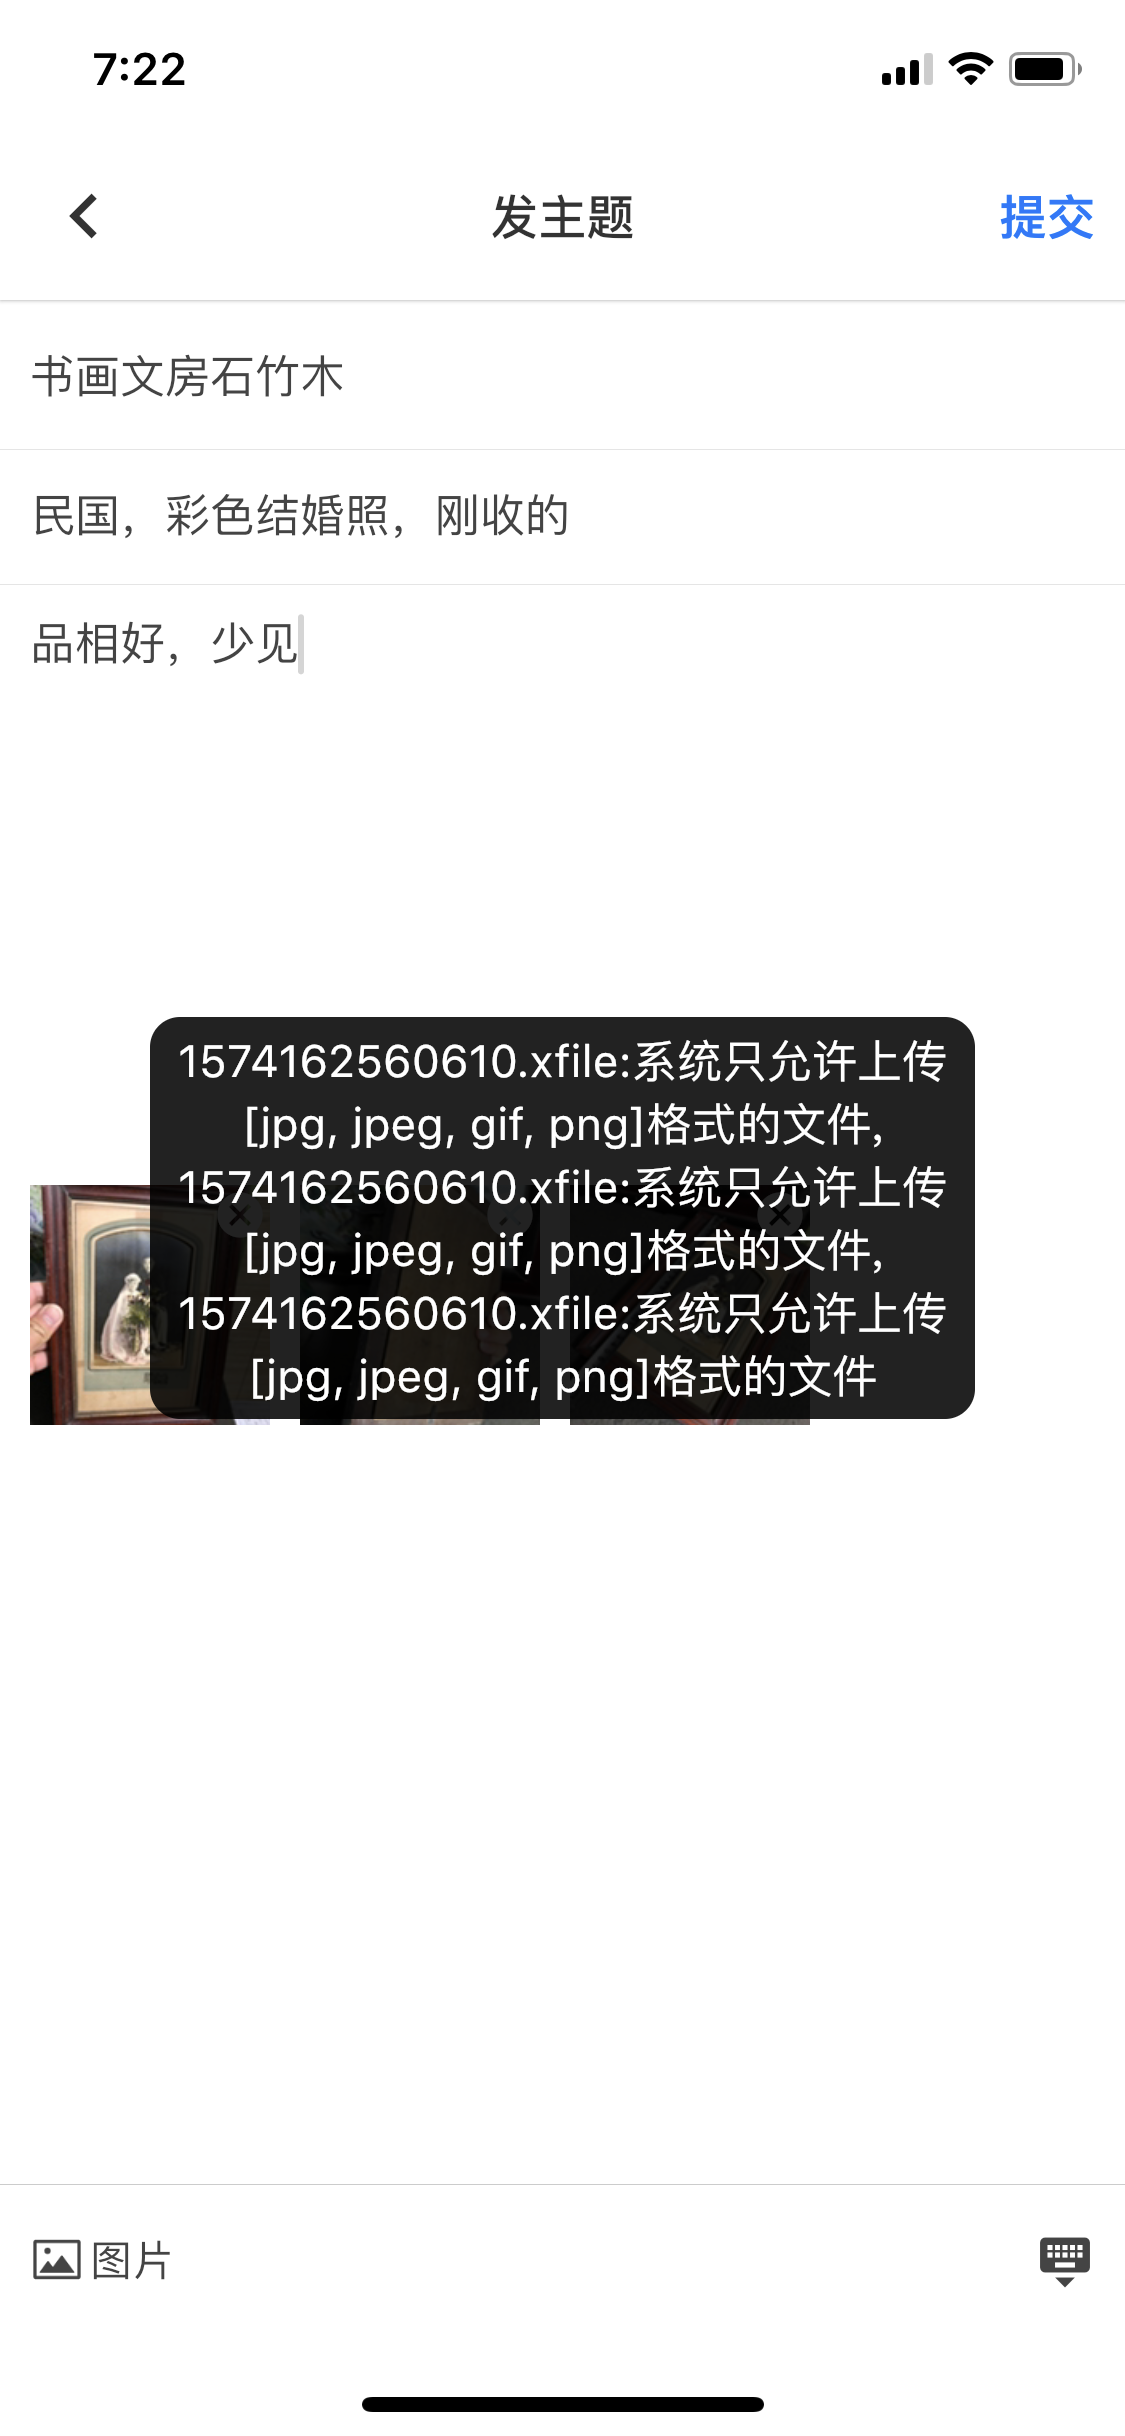 1574162593695.xfile.png